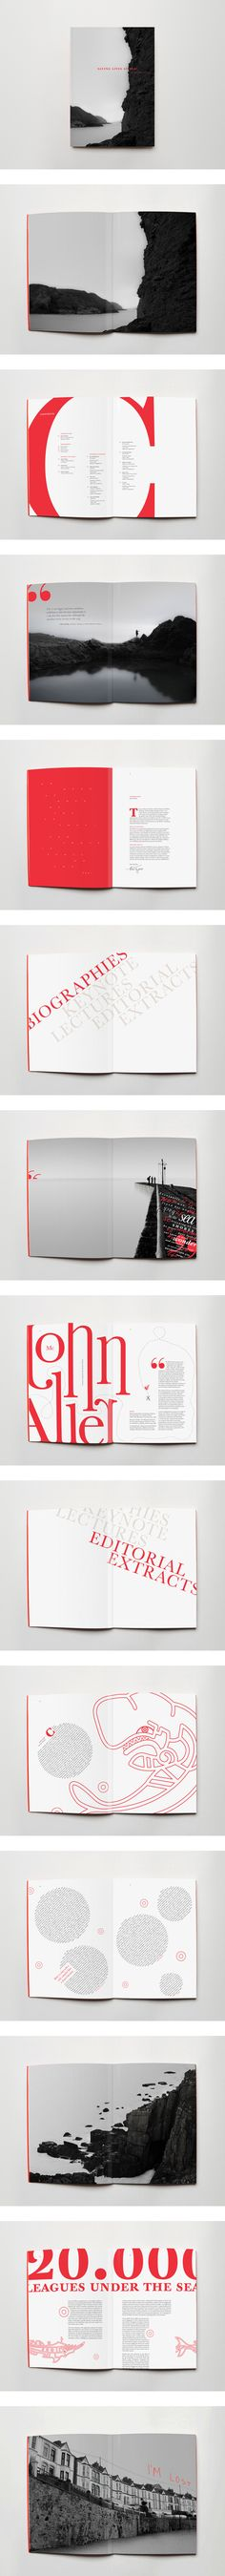 RNLI Catalogue by Ciprian Robu